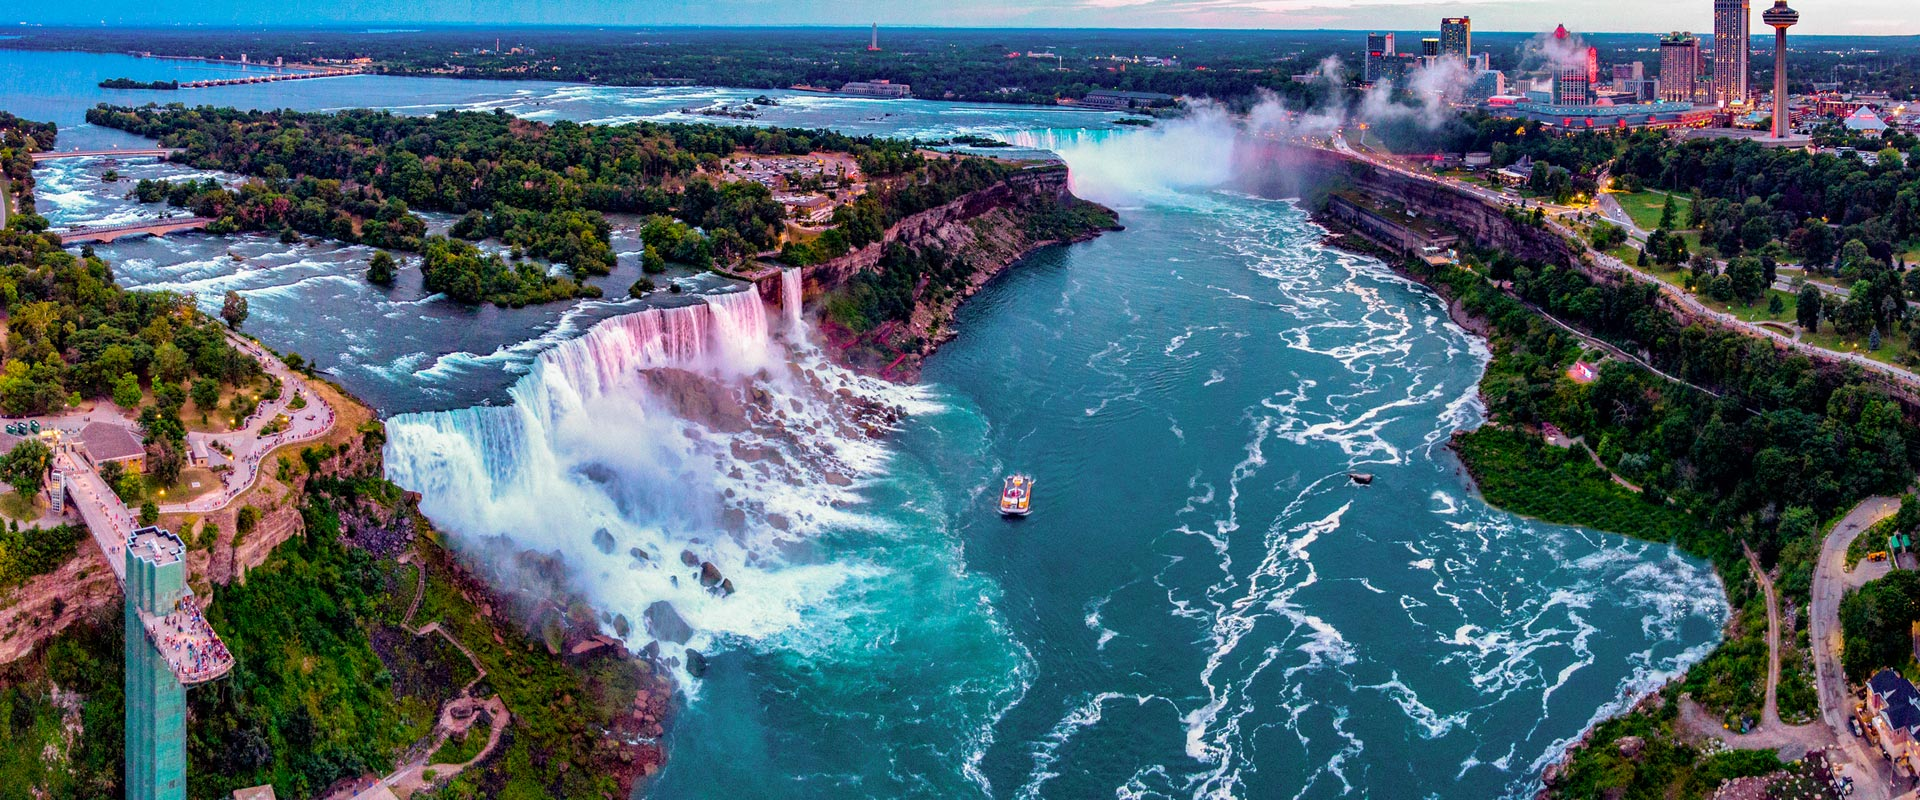 How Do I Get From Toronto Airport To Niagara Falls